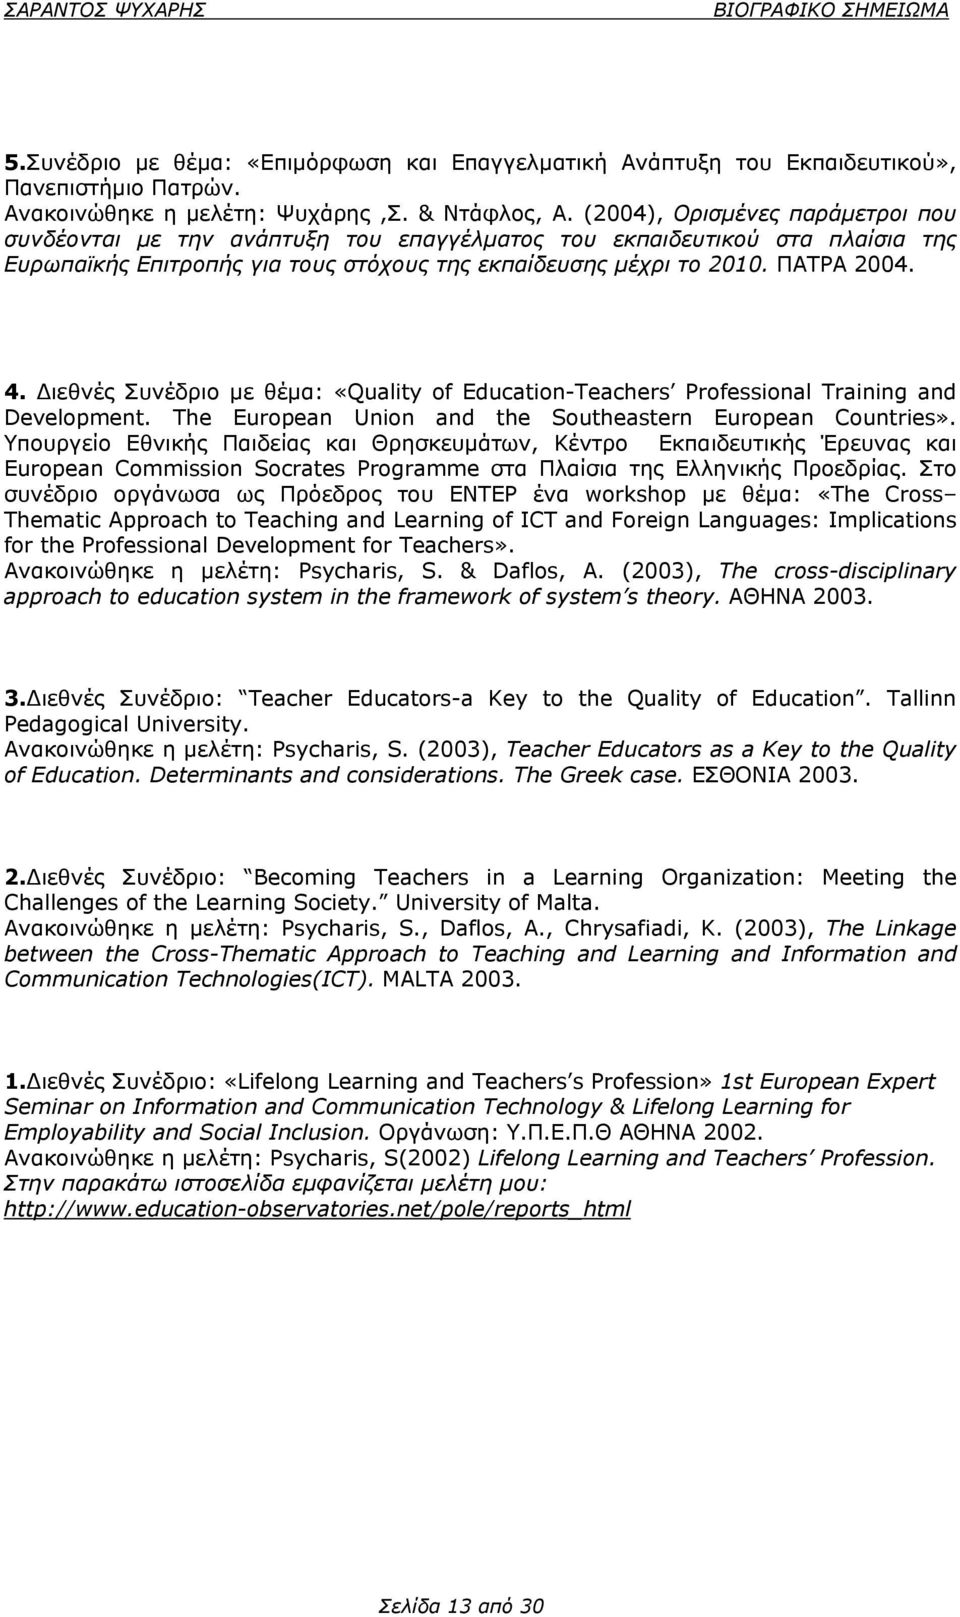 Διεθνές Συνέδριο με θέμα: «Quality of Education-Teachers Professional Training and Development. The European Union and the Southeastern European Countries».